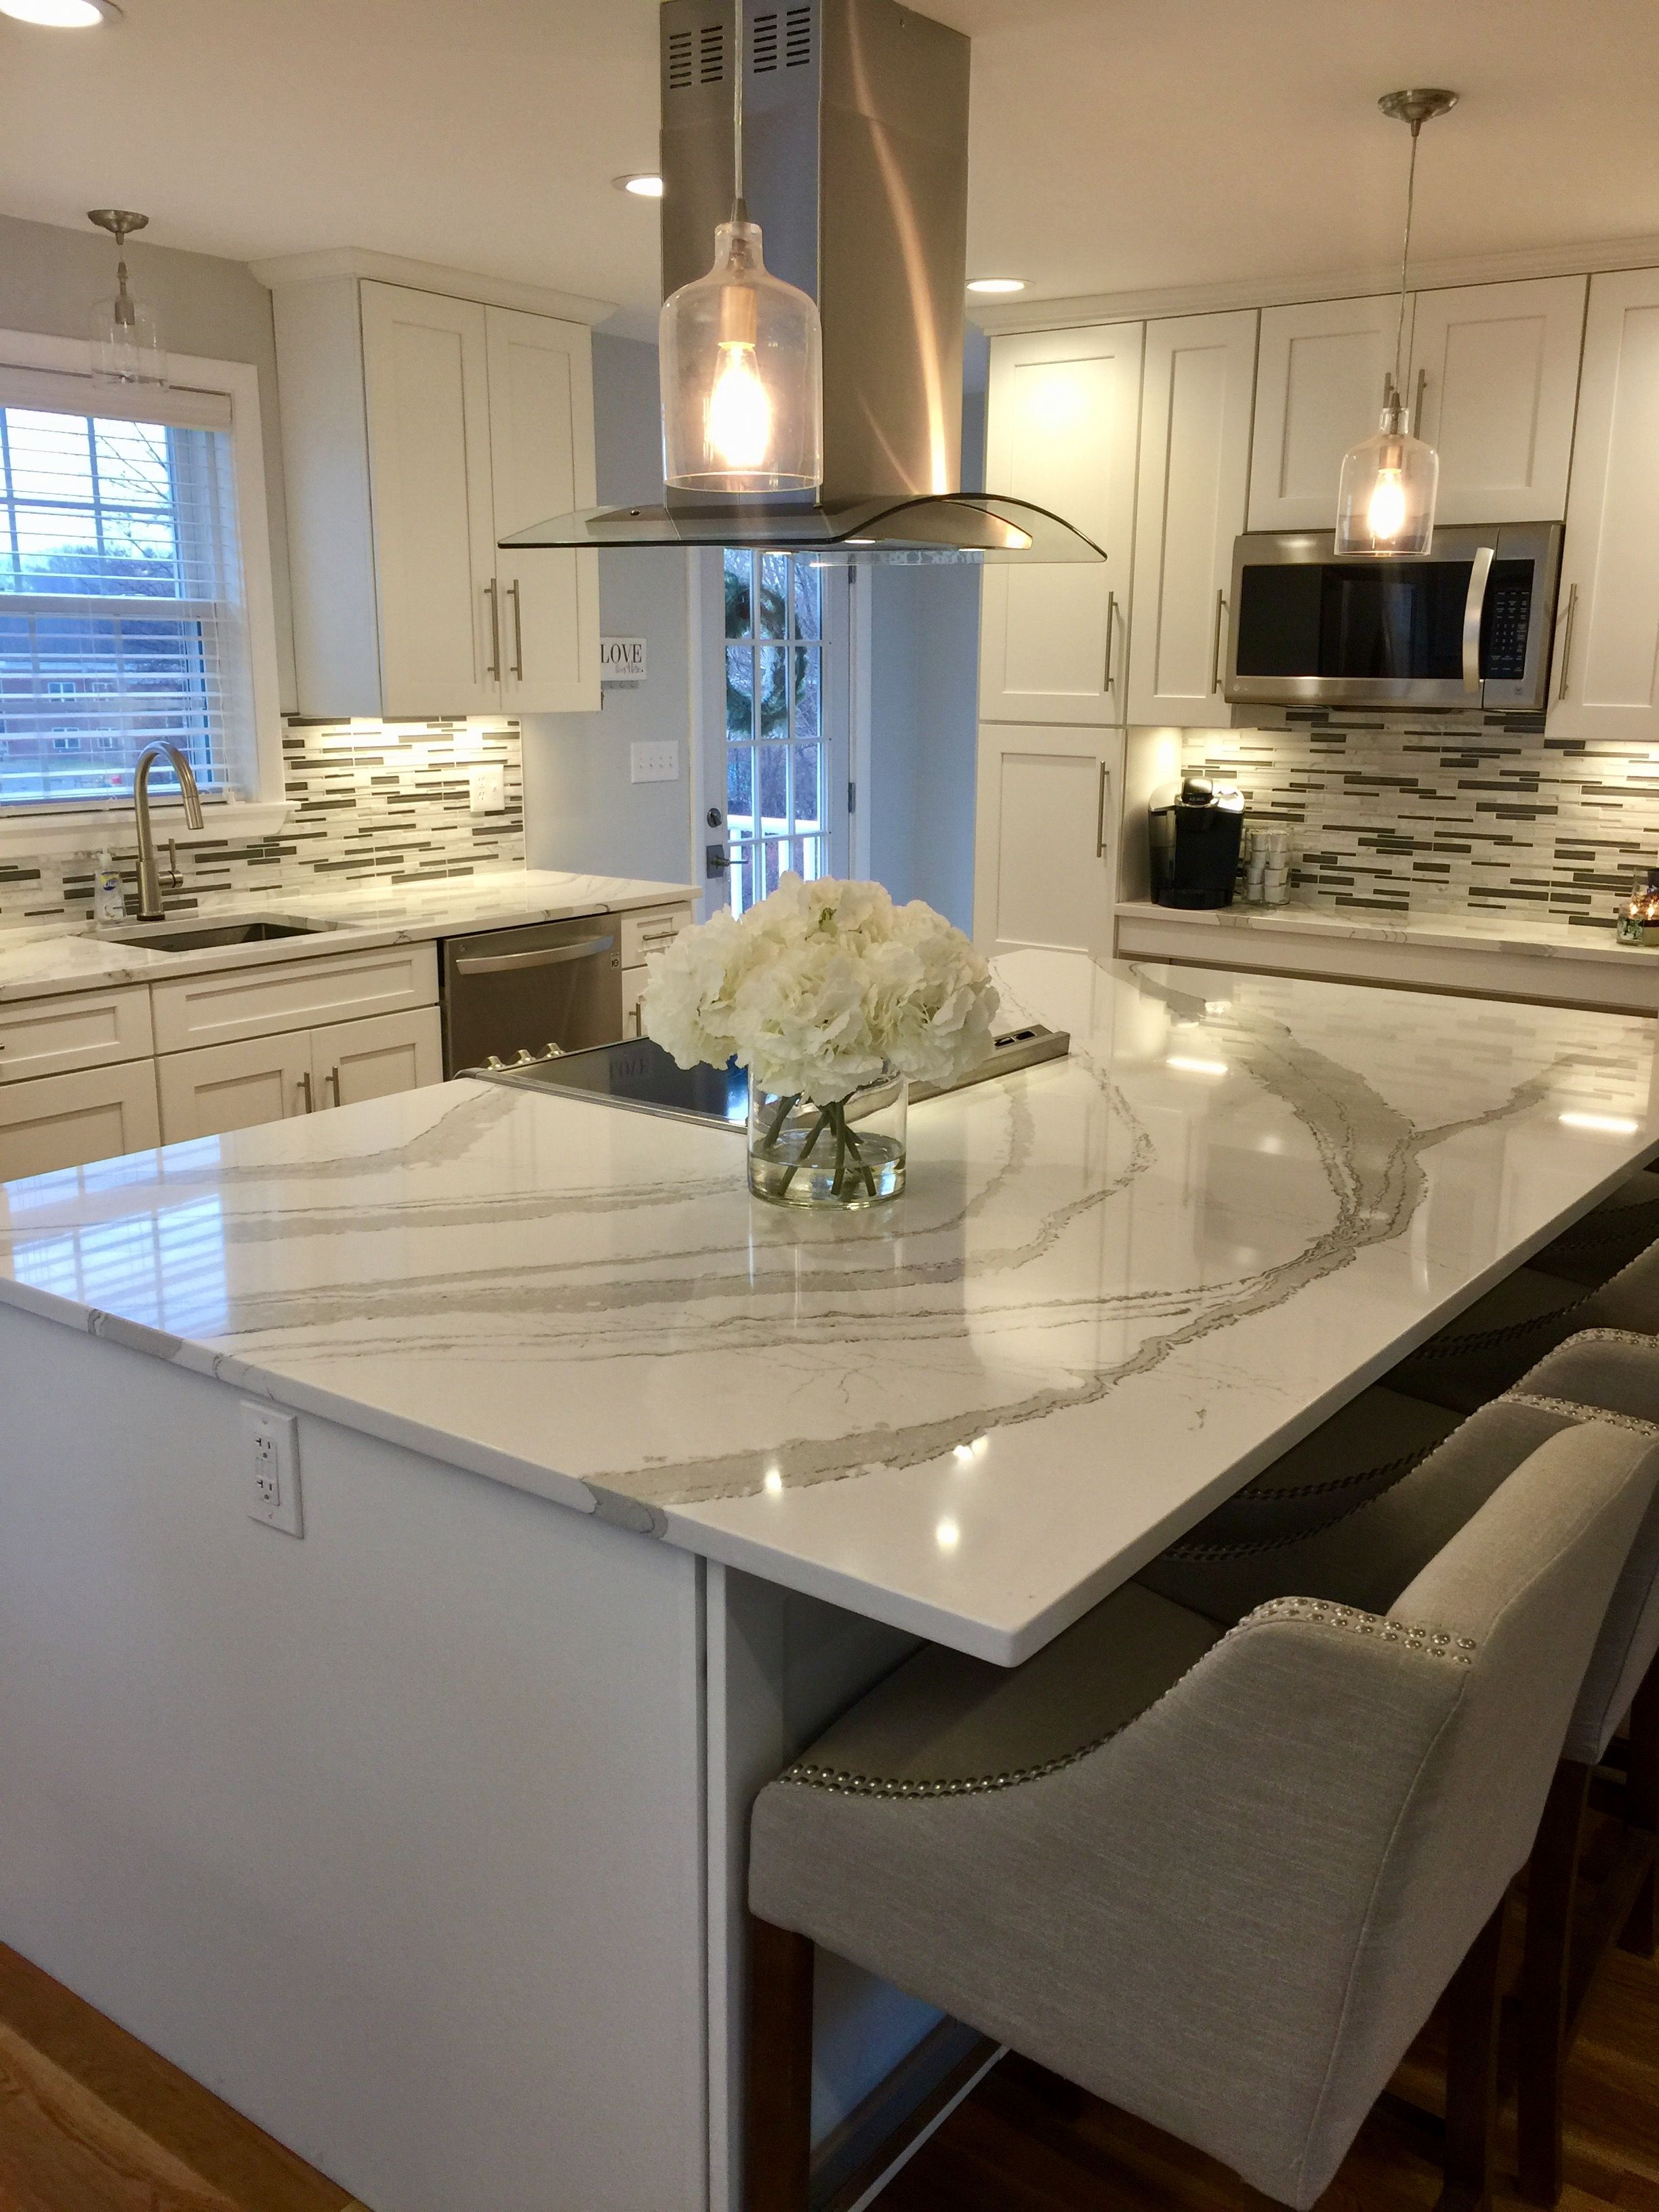 White Shaker Kitchen Cabinets With White And Gray Quartz From Cambria Brittanicca Kitchen Cabinet Inspiration Kitchen Design Home Decor Kitchen